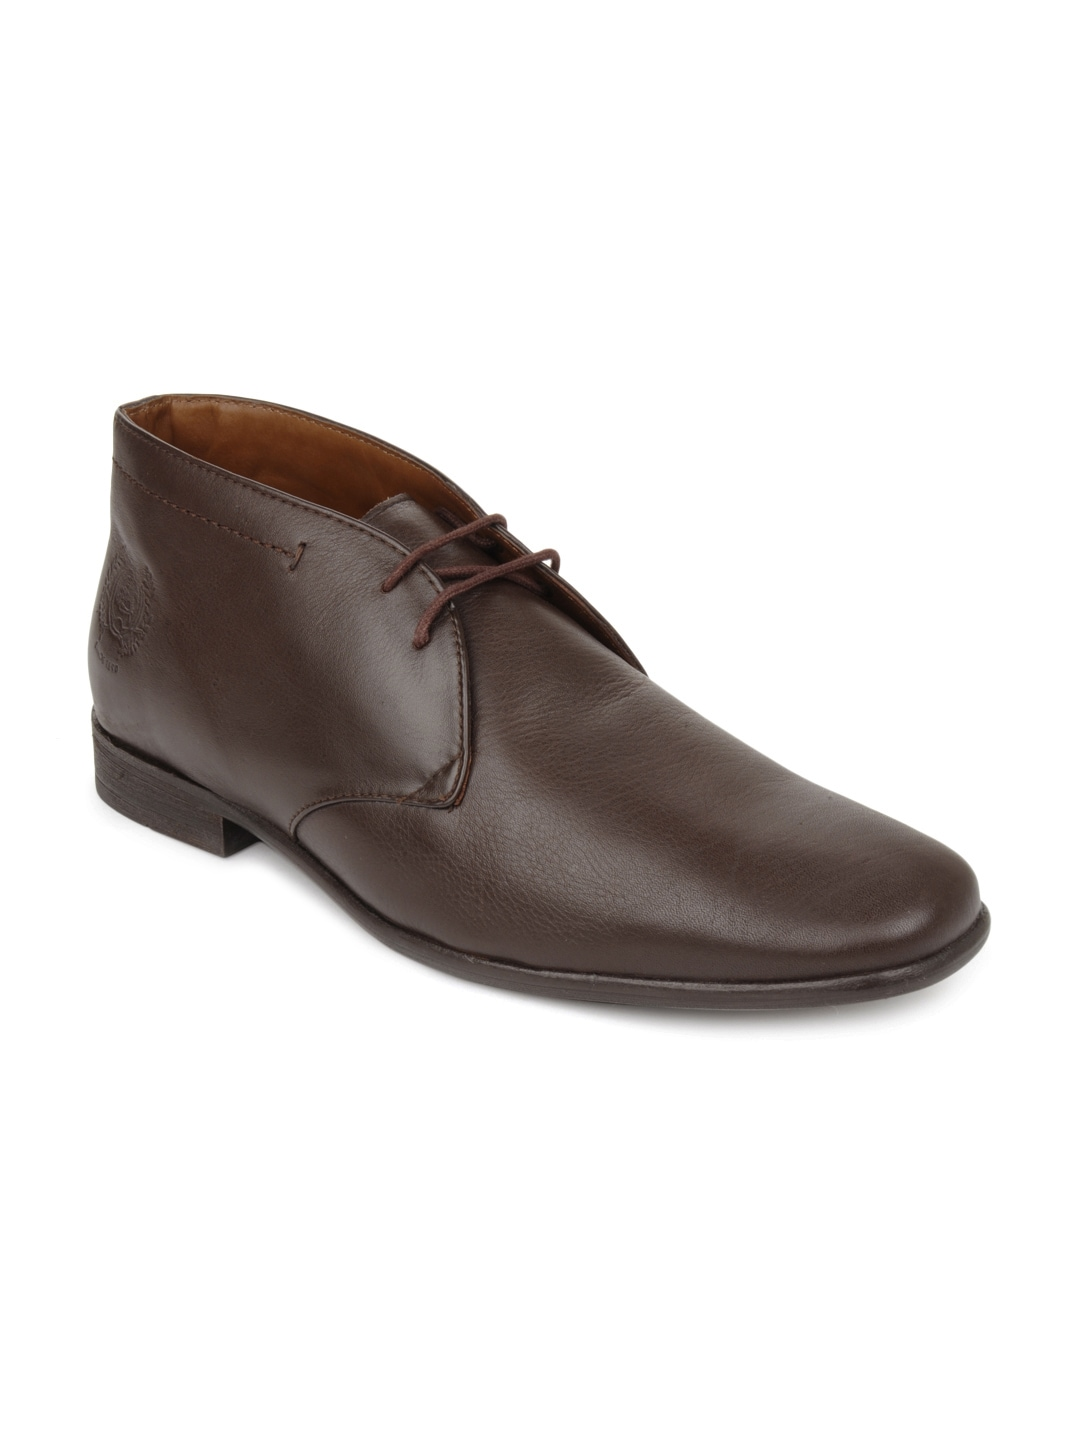 buy u s polo assn brown formal shoes 288